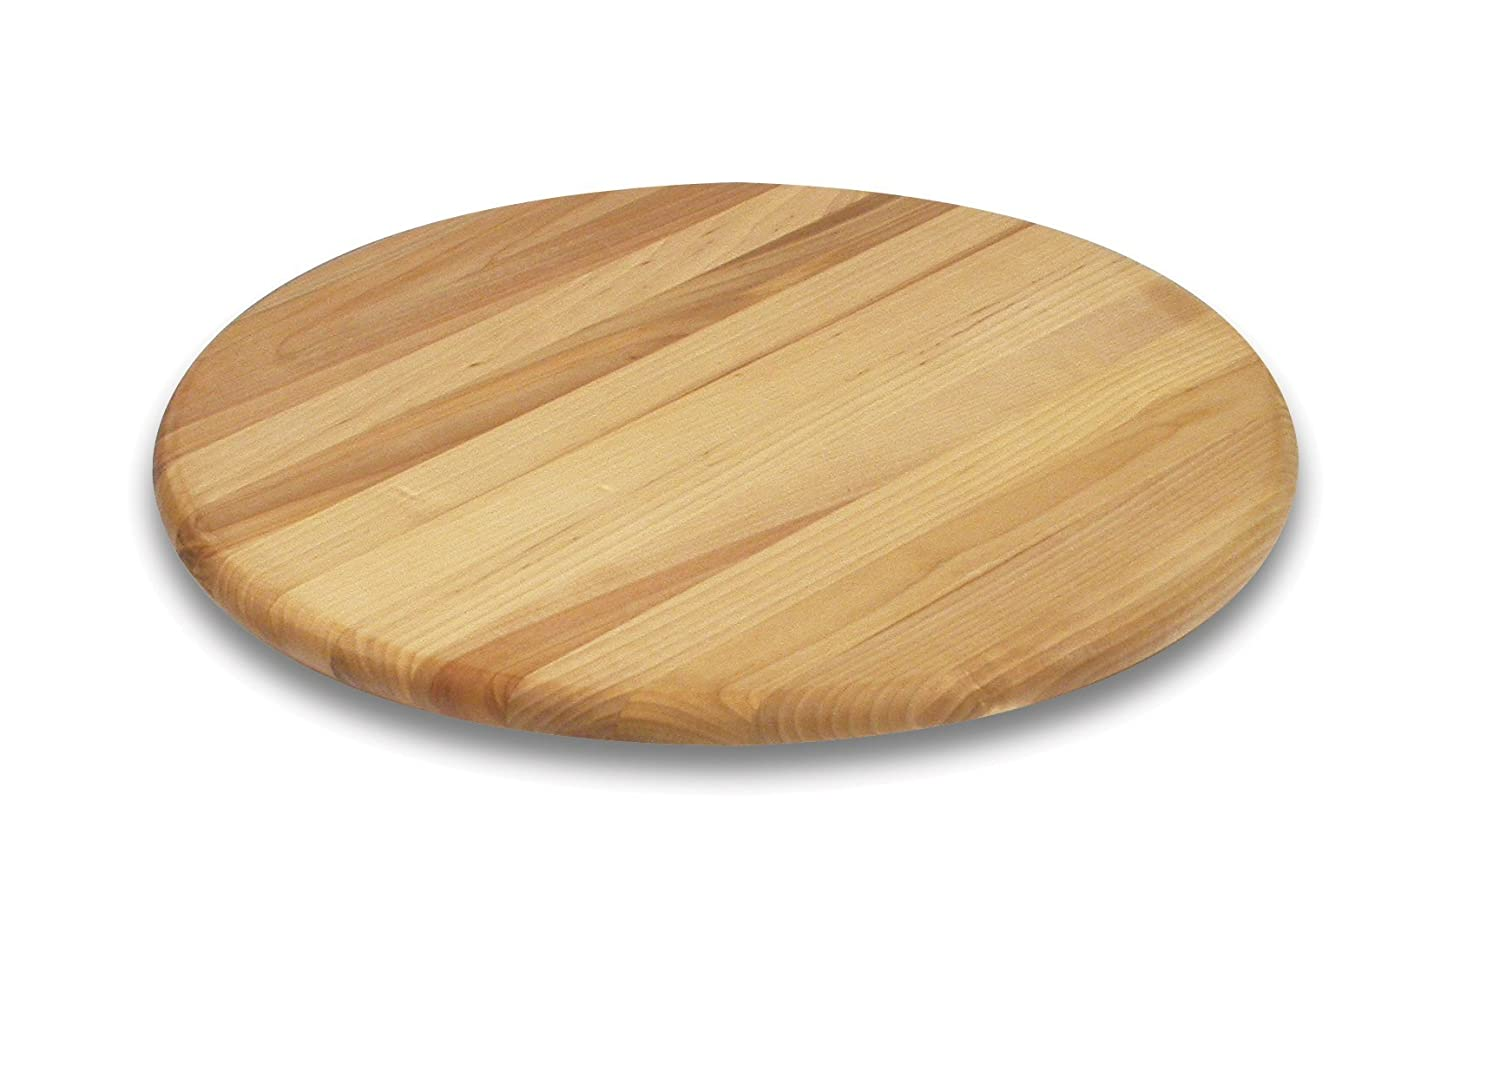 Snow River Grande Epicure M6009303 15-Inch by 3/4-Inch Lazy Susan